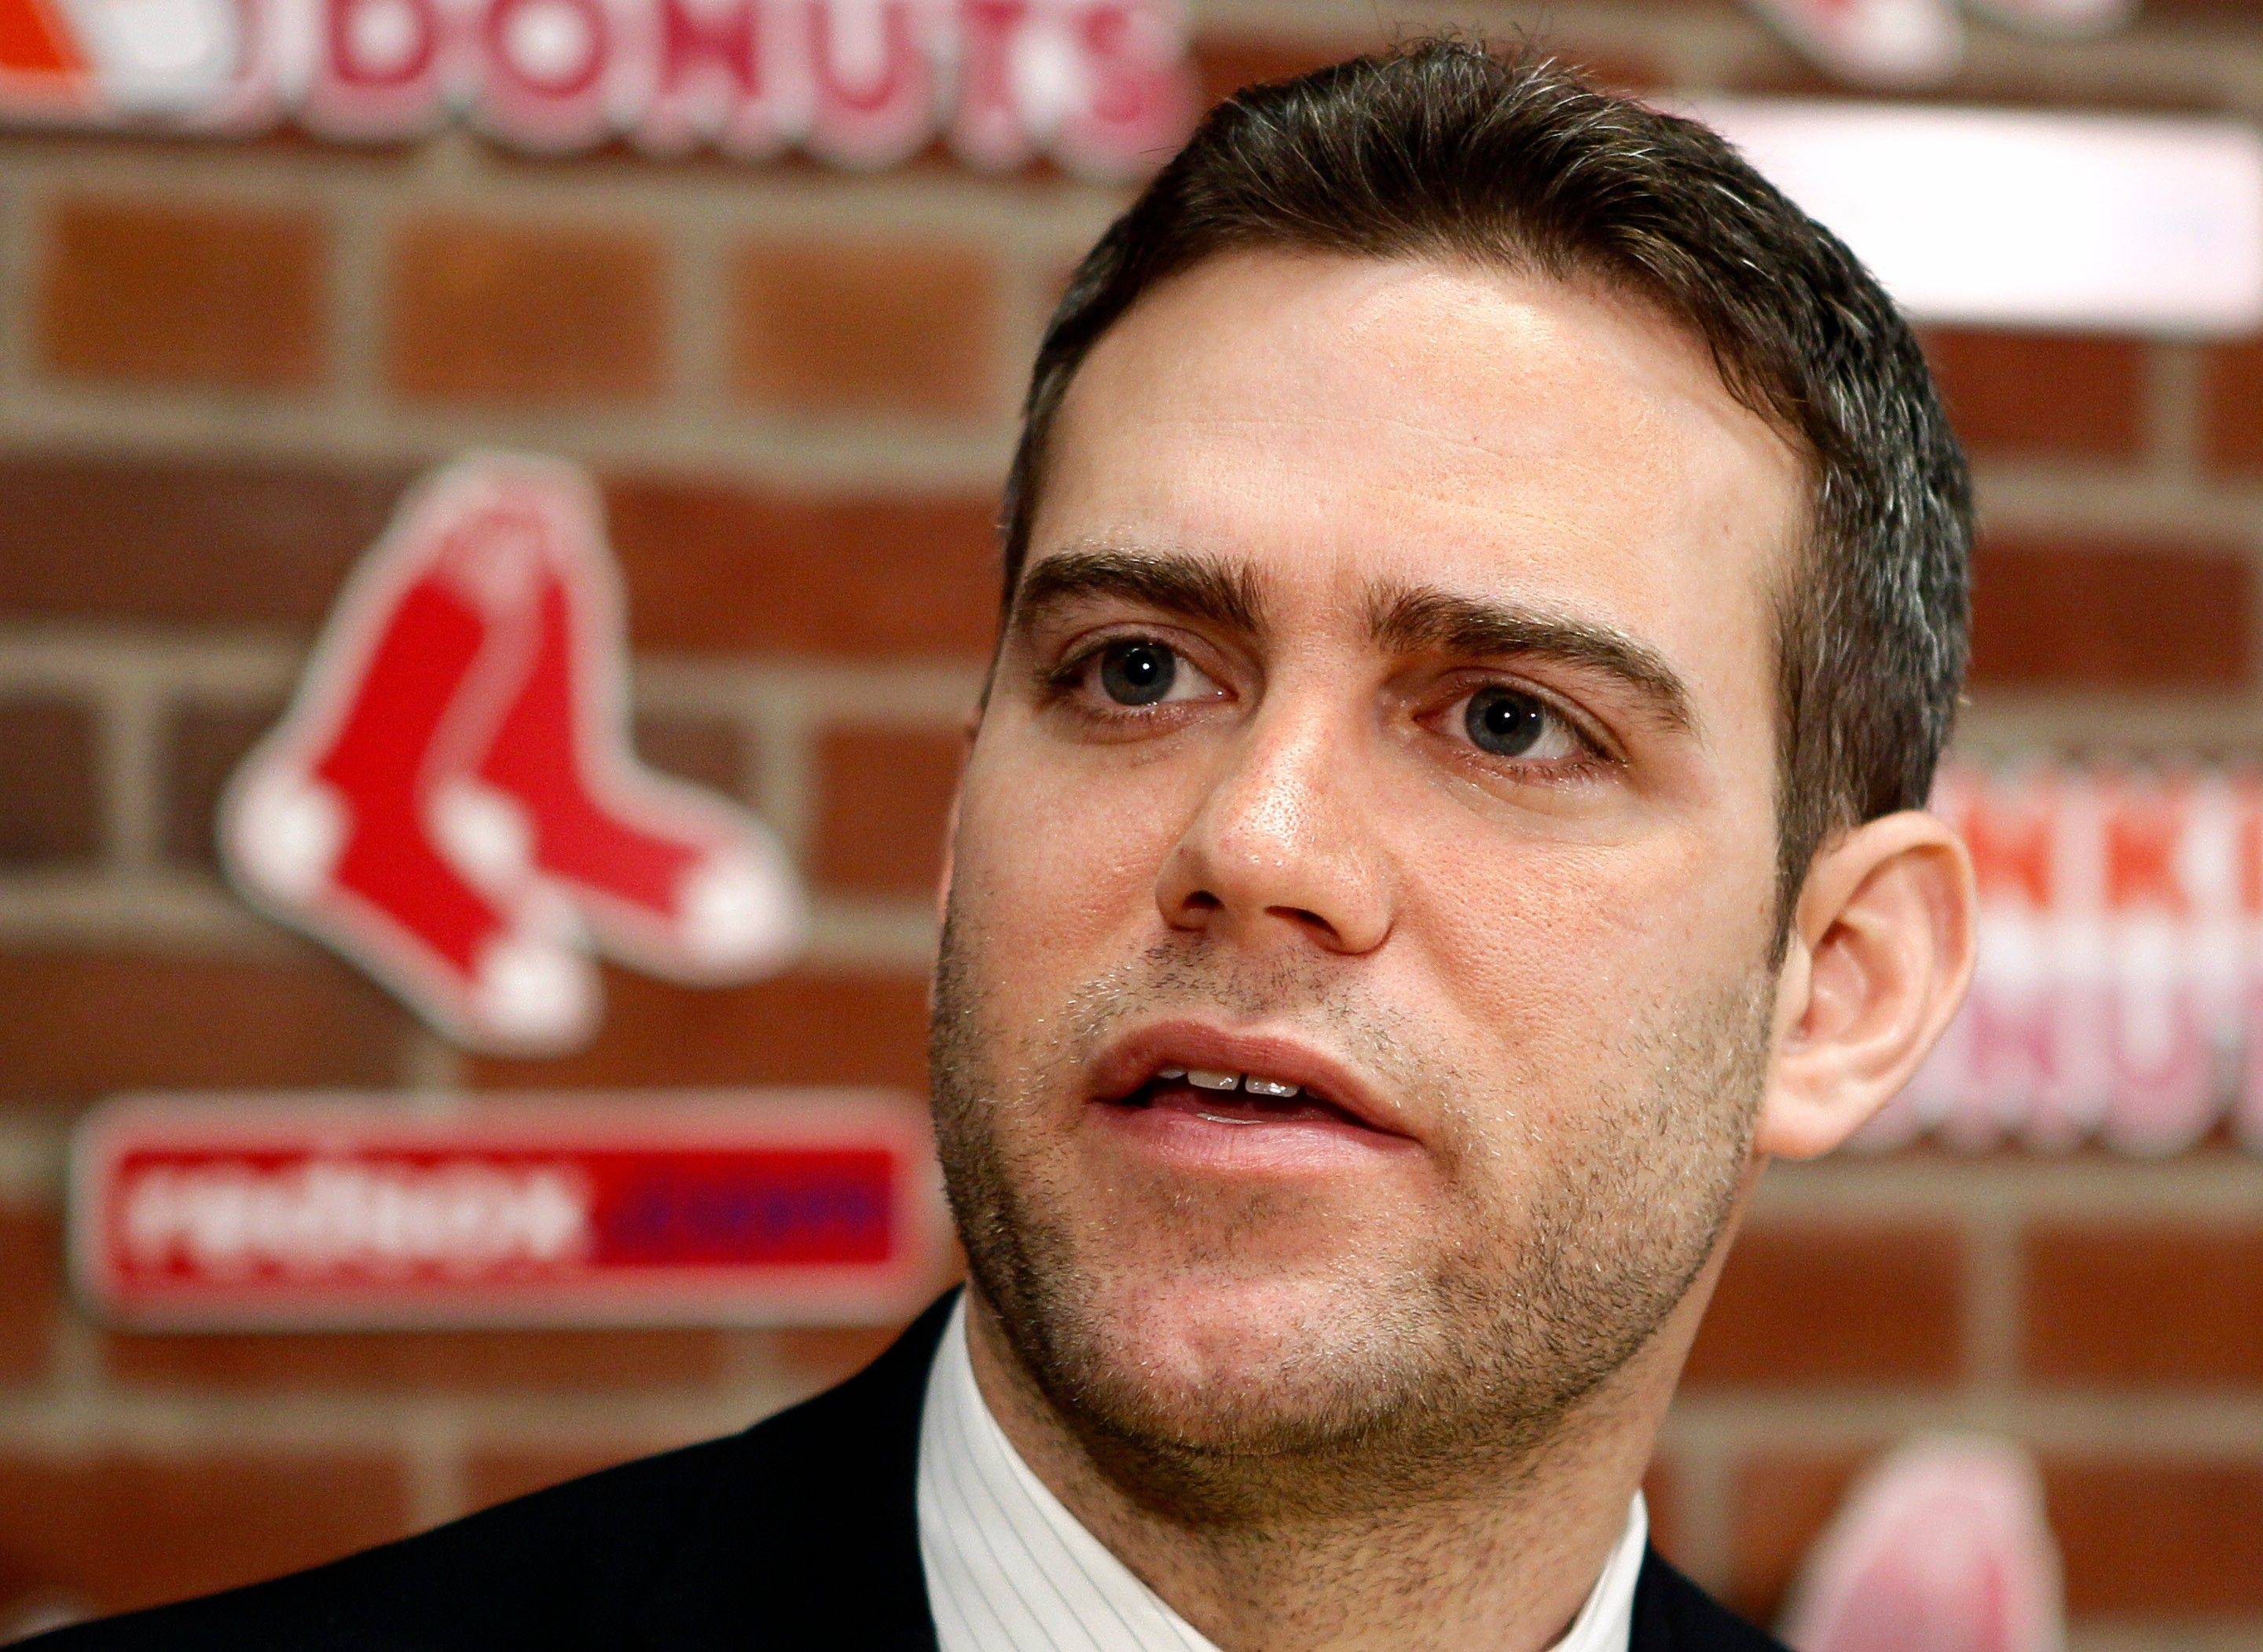 Several reports say the Cubs have finalized a deal with the Boston Red Sox and will introduce Theo Epstein as the head of their baseball operations on Friday in Chicago.